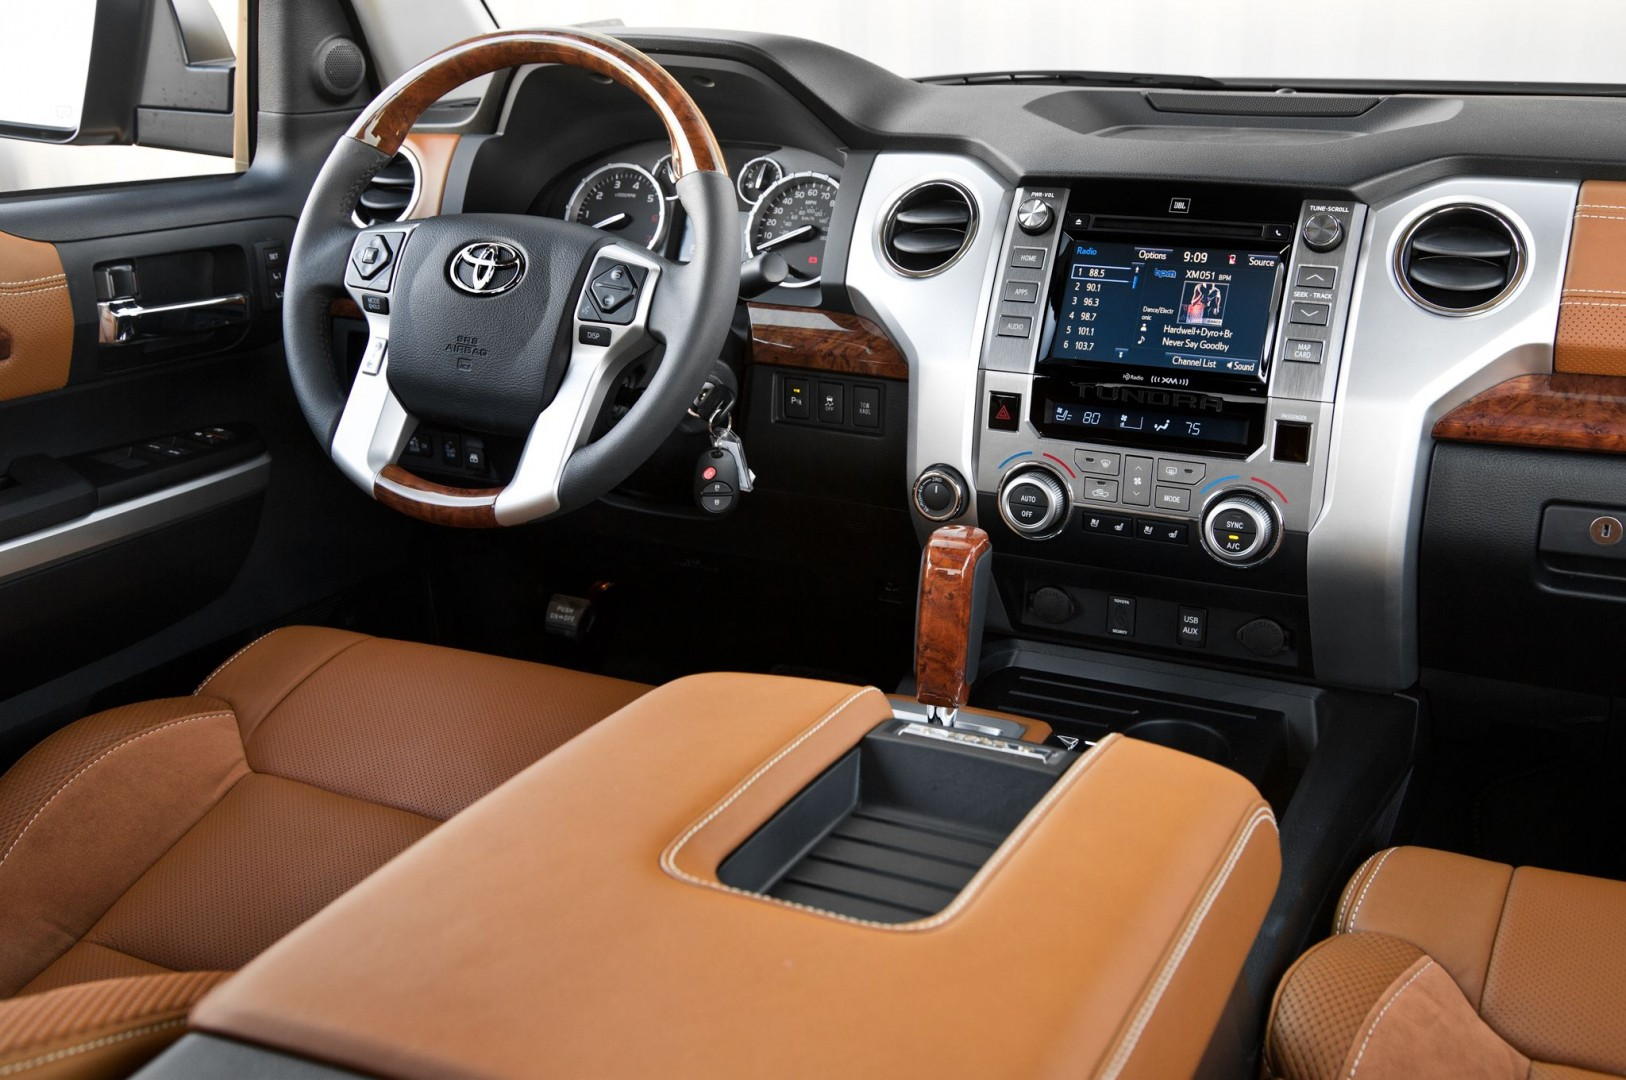 2018 Toyota Tundra Exterior Specs & Options